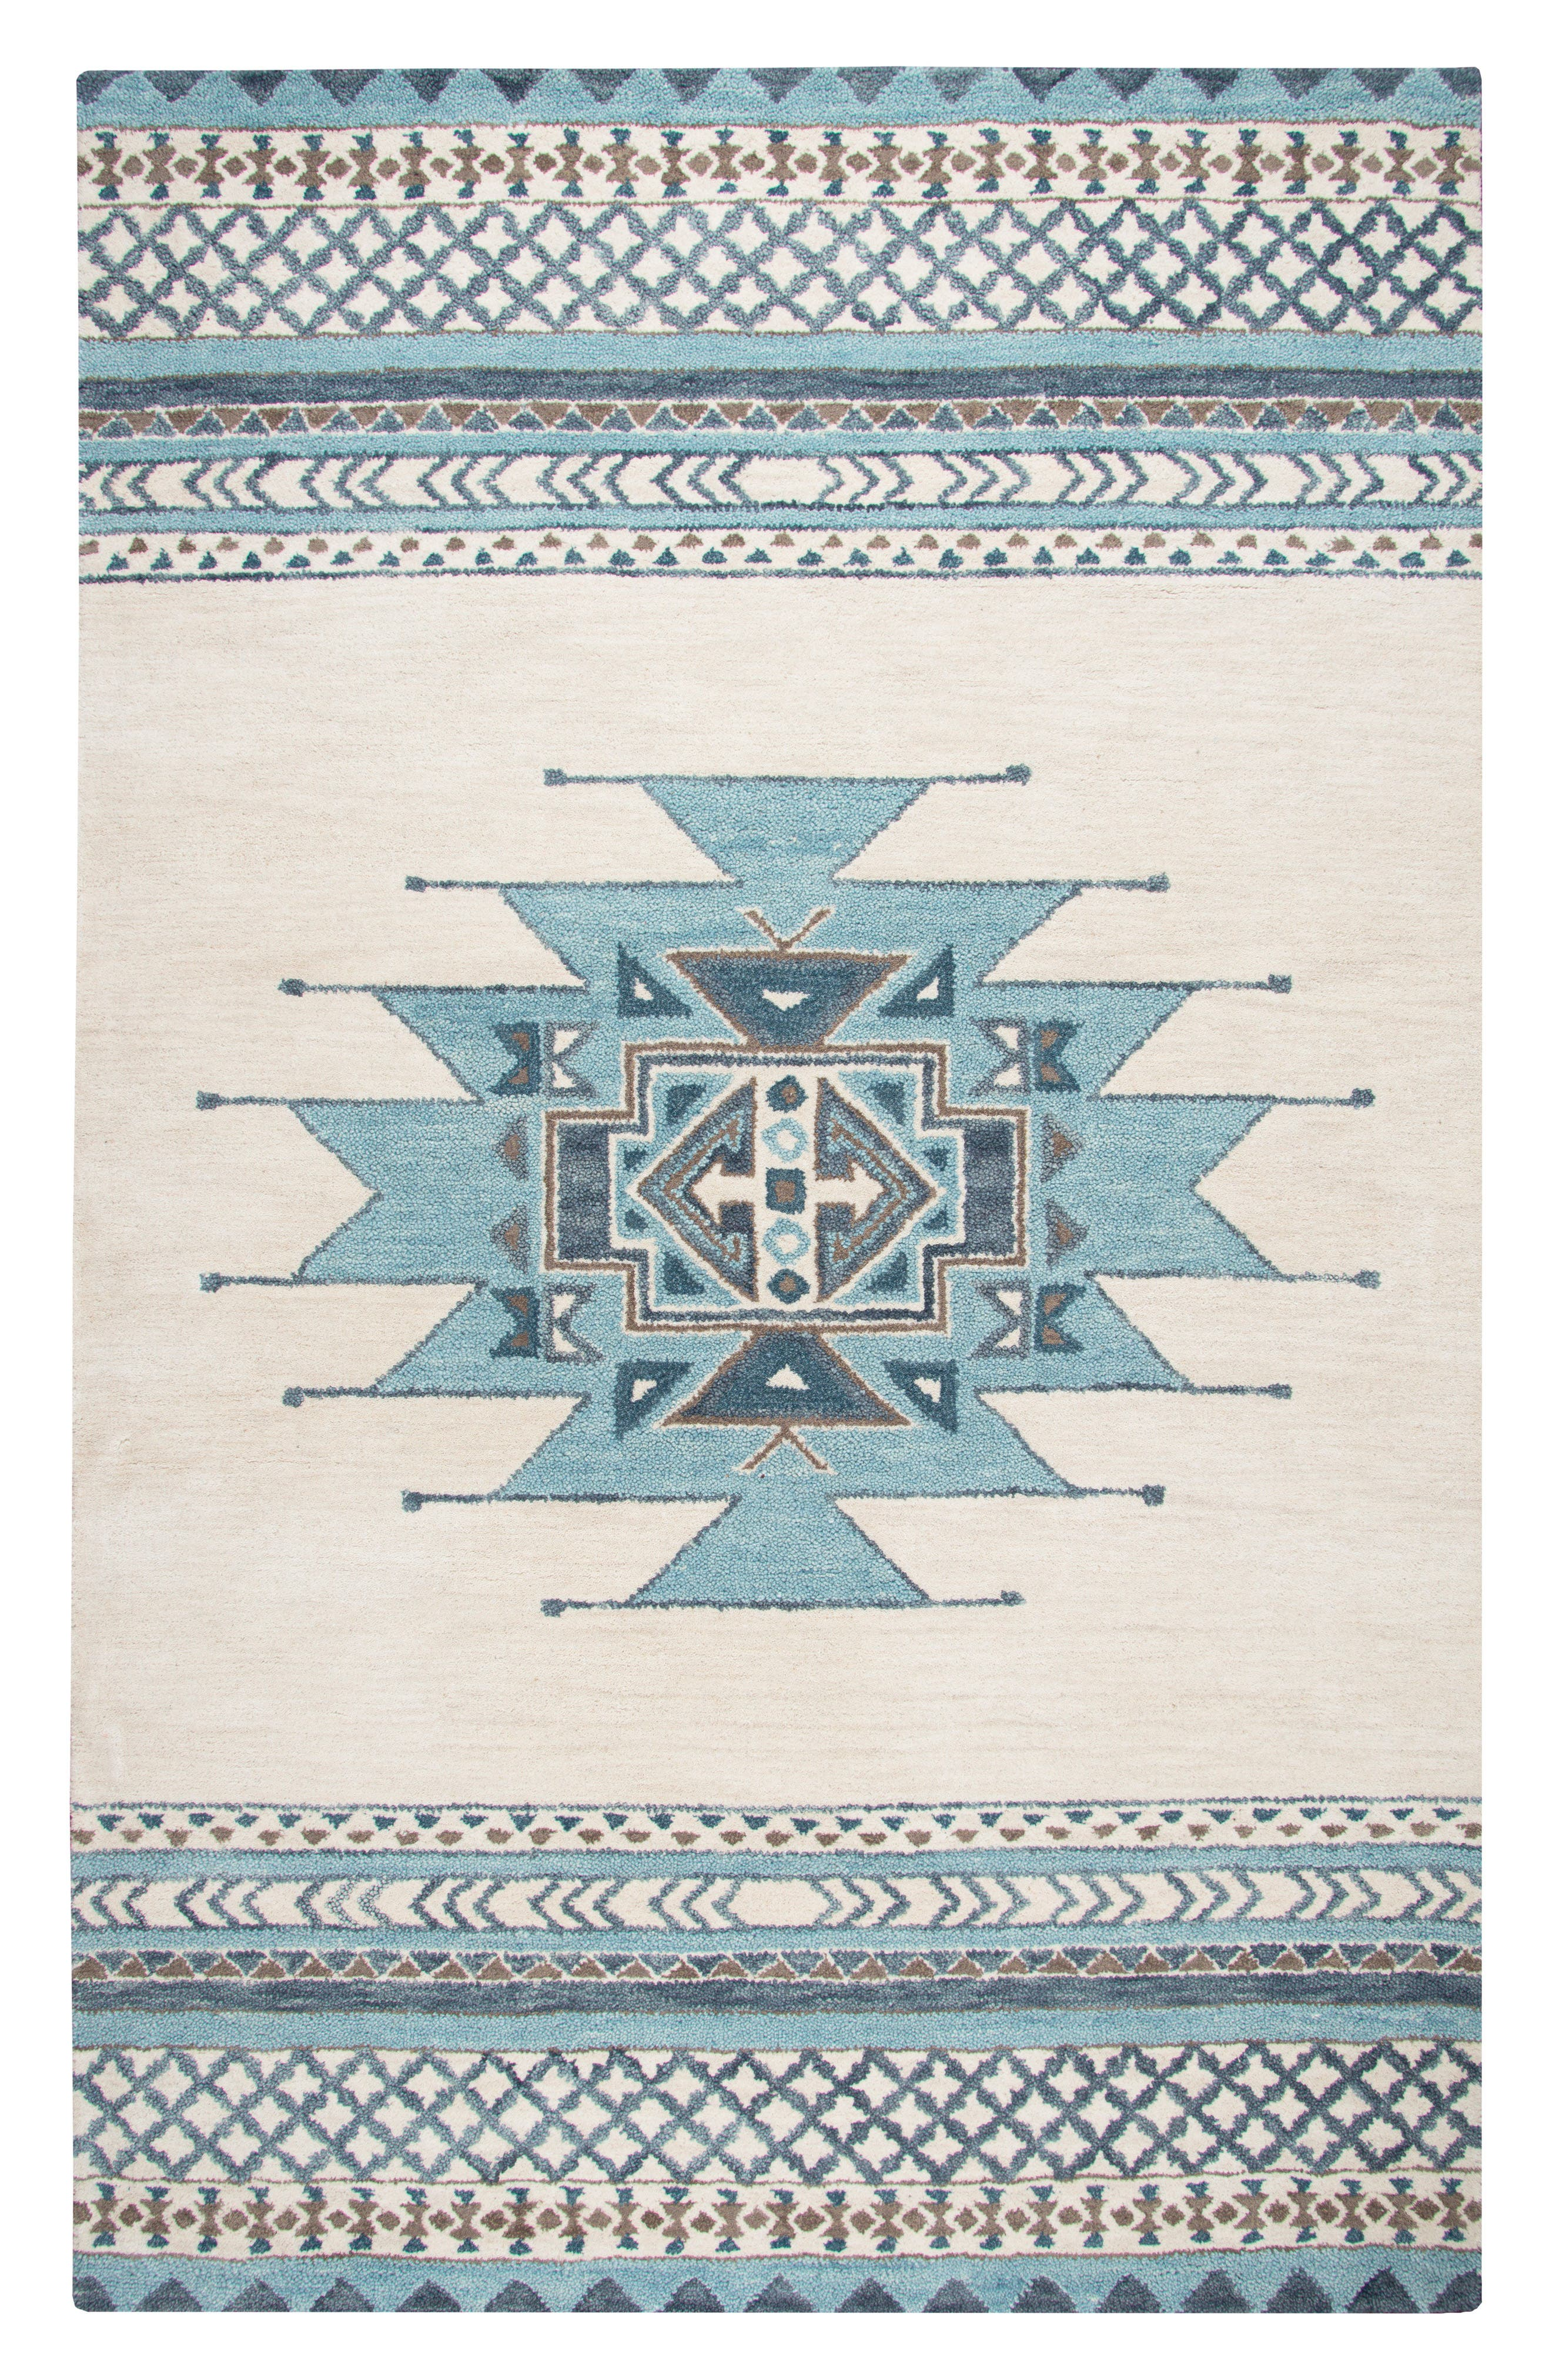 Hand Tufted Wool Blanket Rug,                         Main,                         color, 400